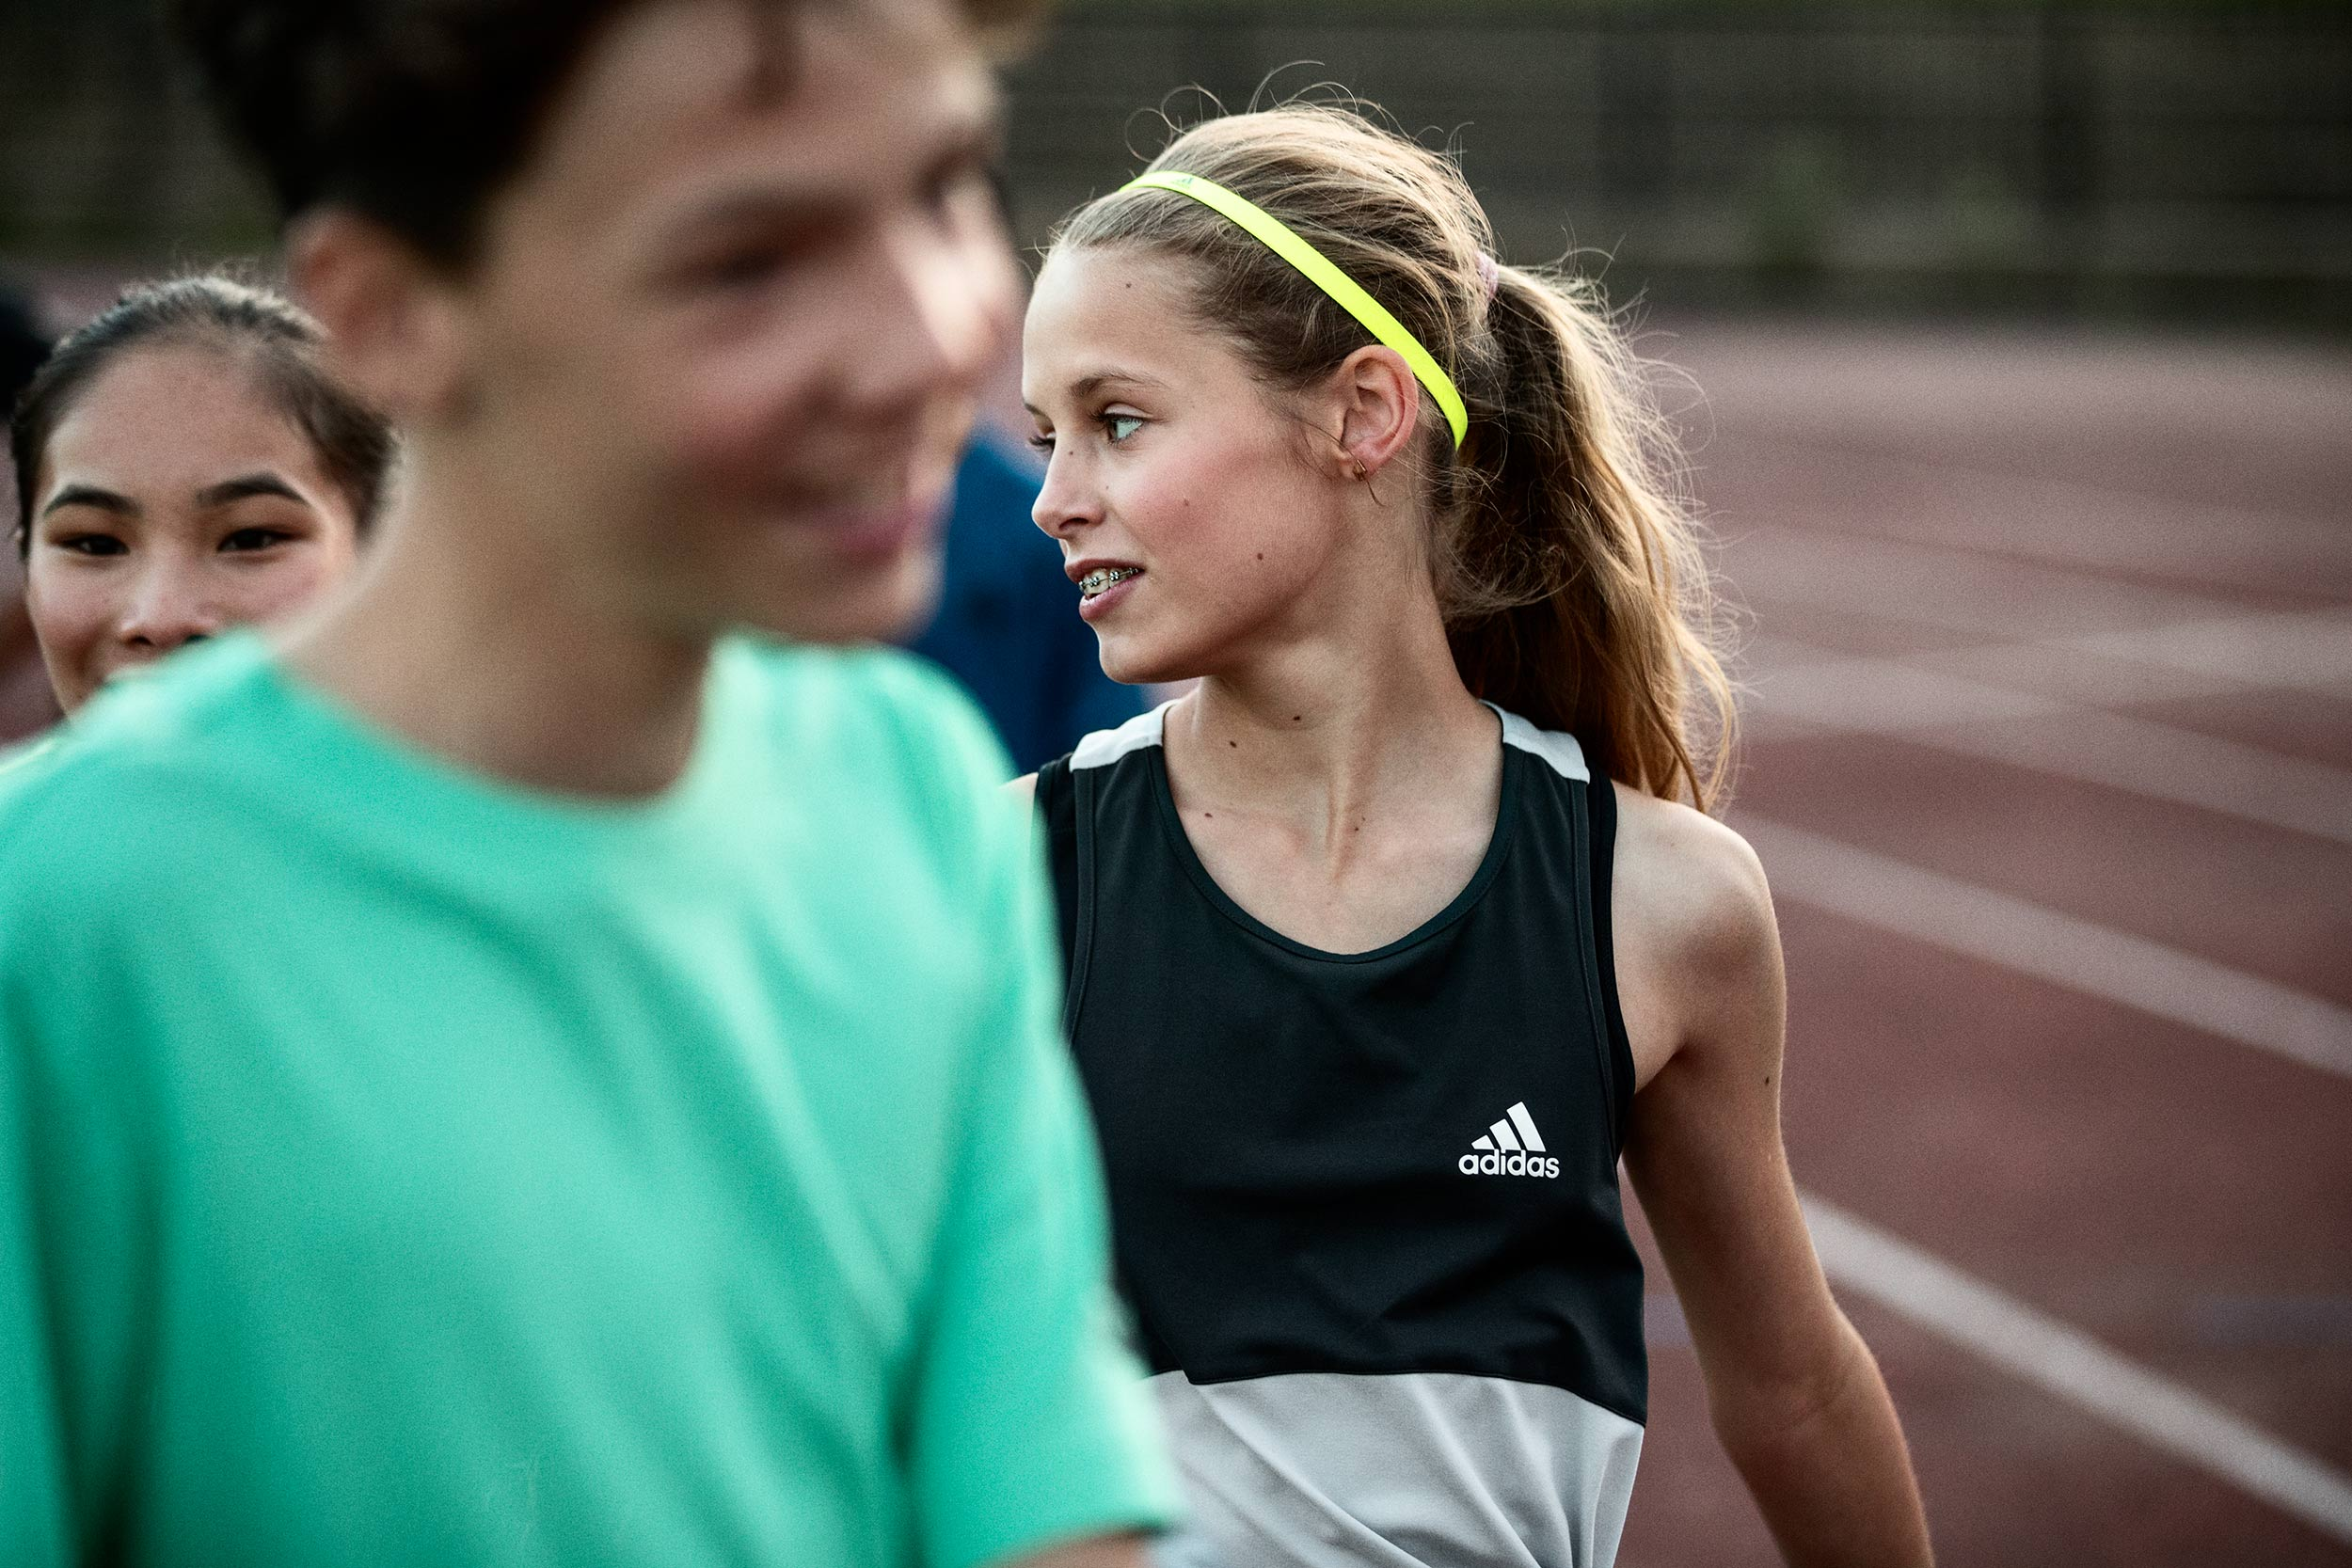 Adidas - Young Athletes / Agency: Fiction